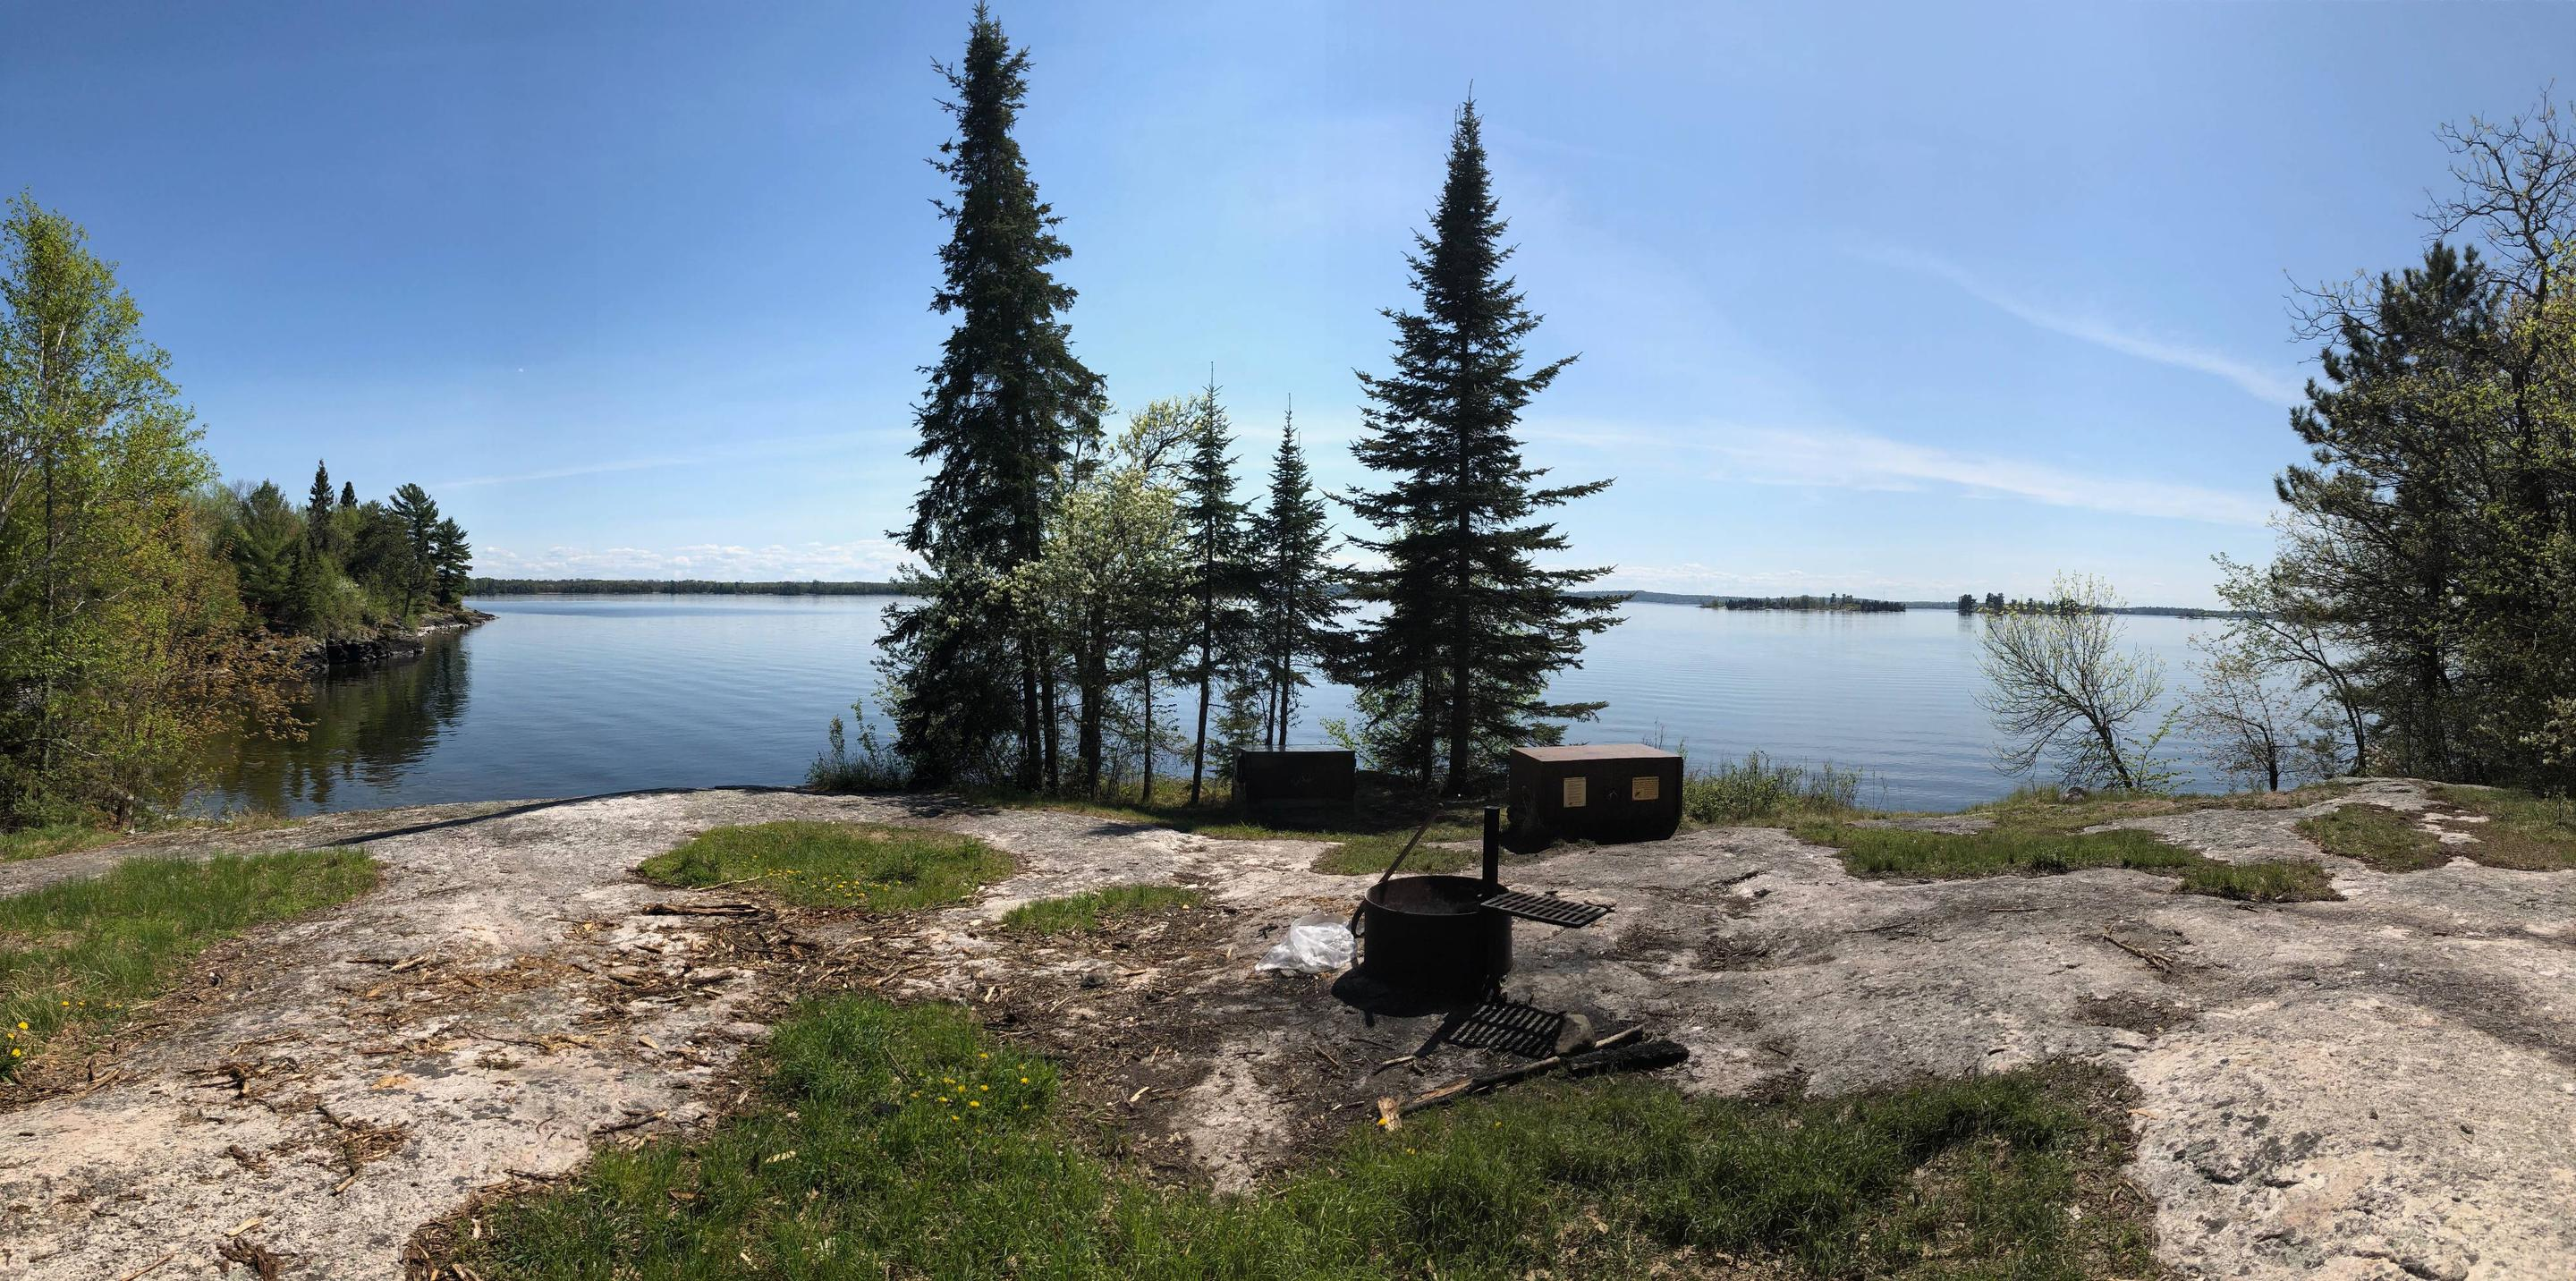 Voyageurs National Park Camping PermitsLooking out onto Kabetogama Lake from a campsite on Cutover Island